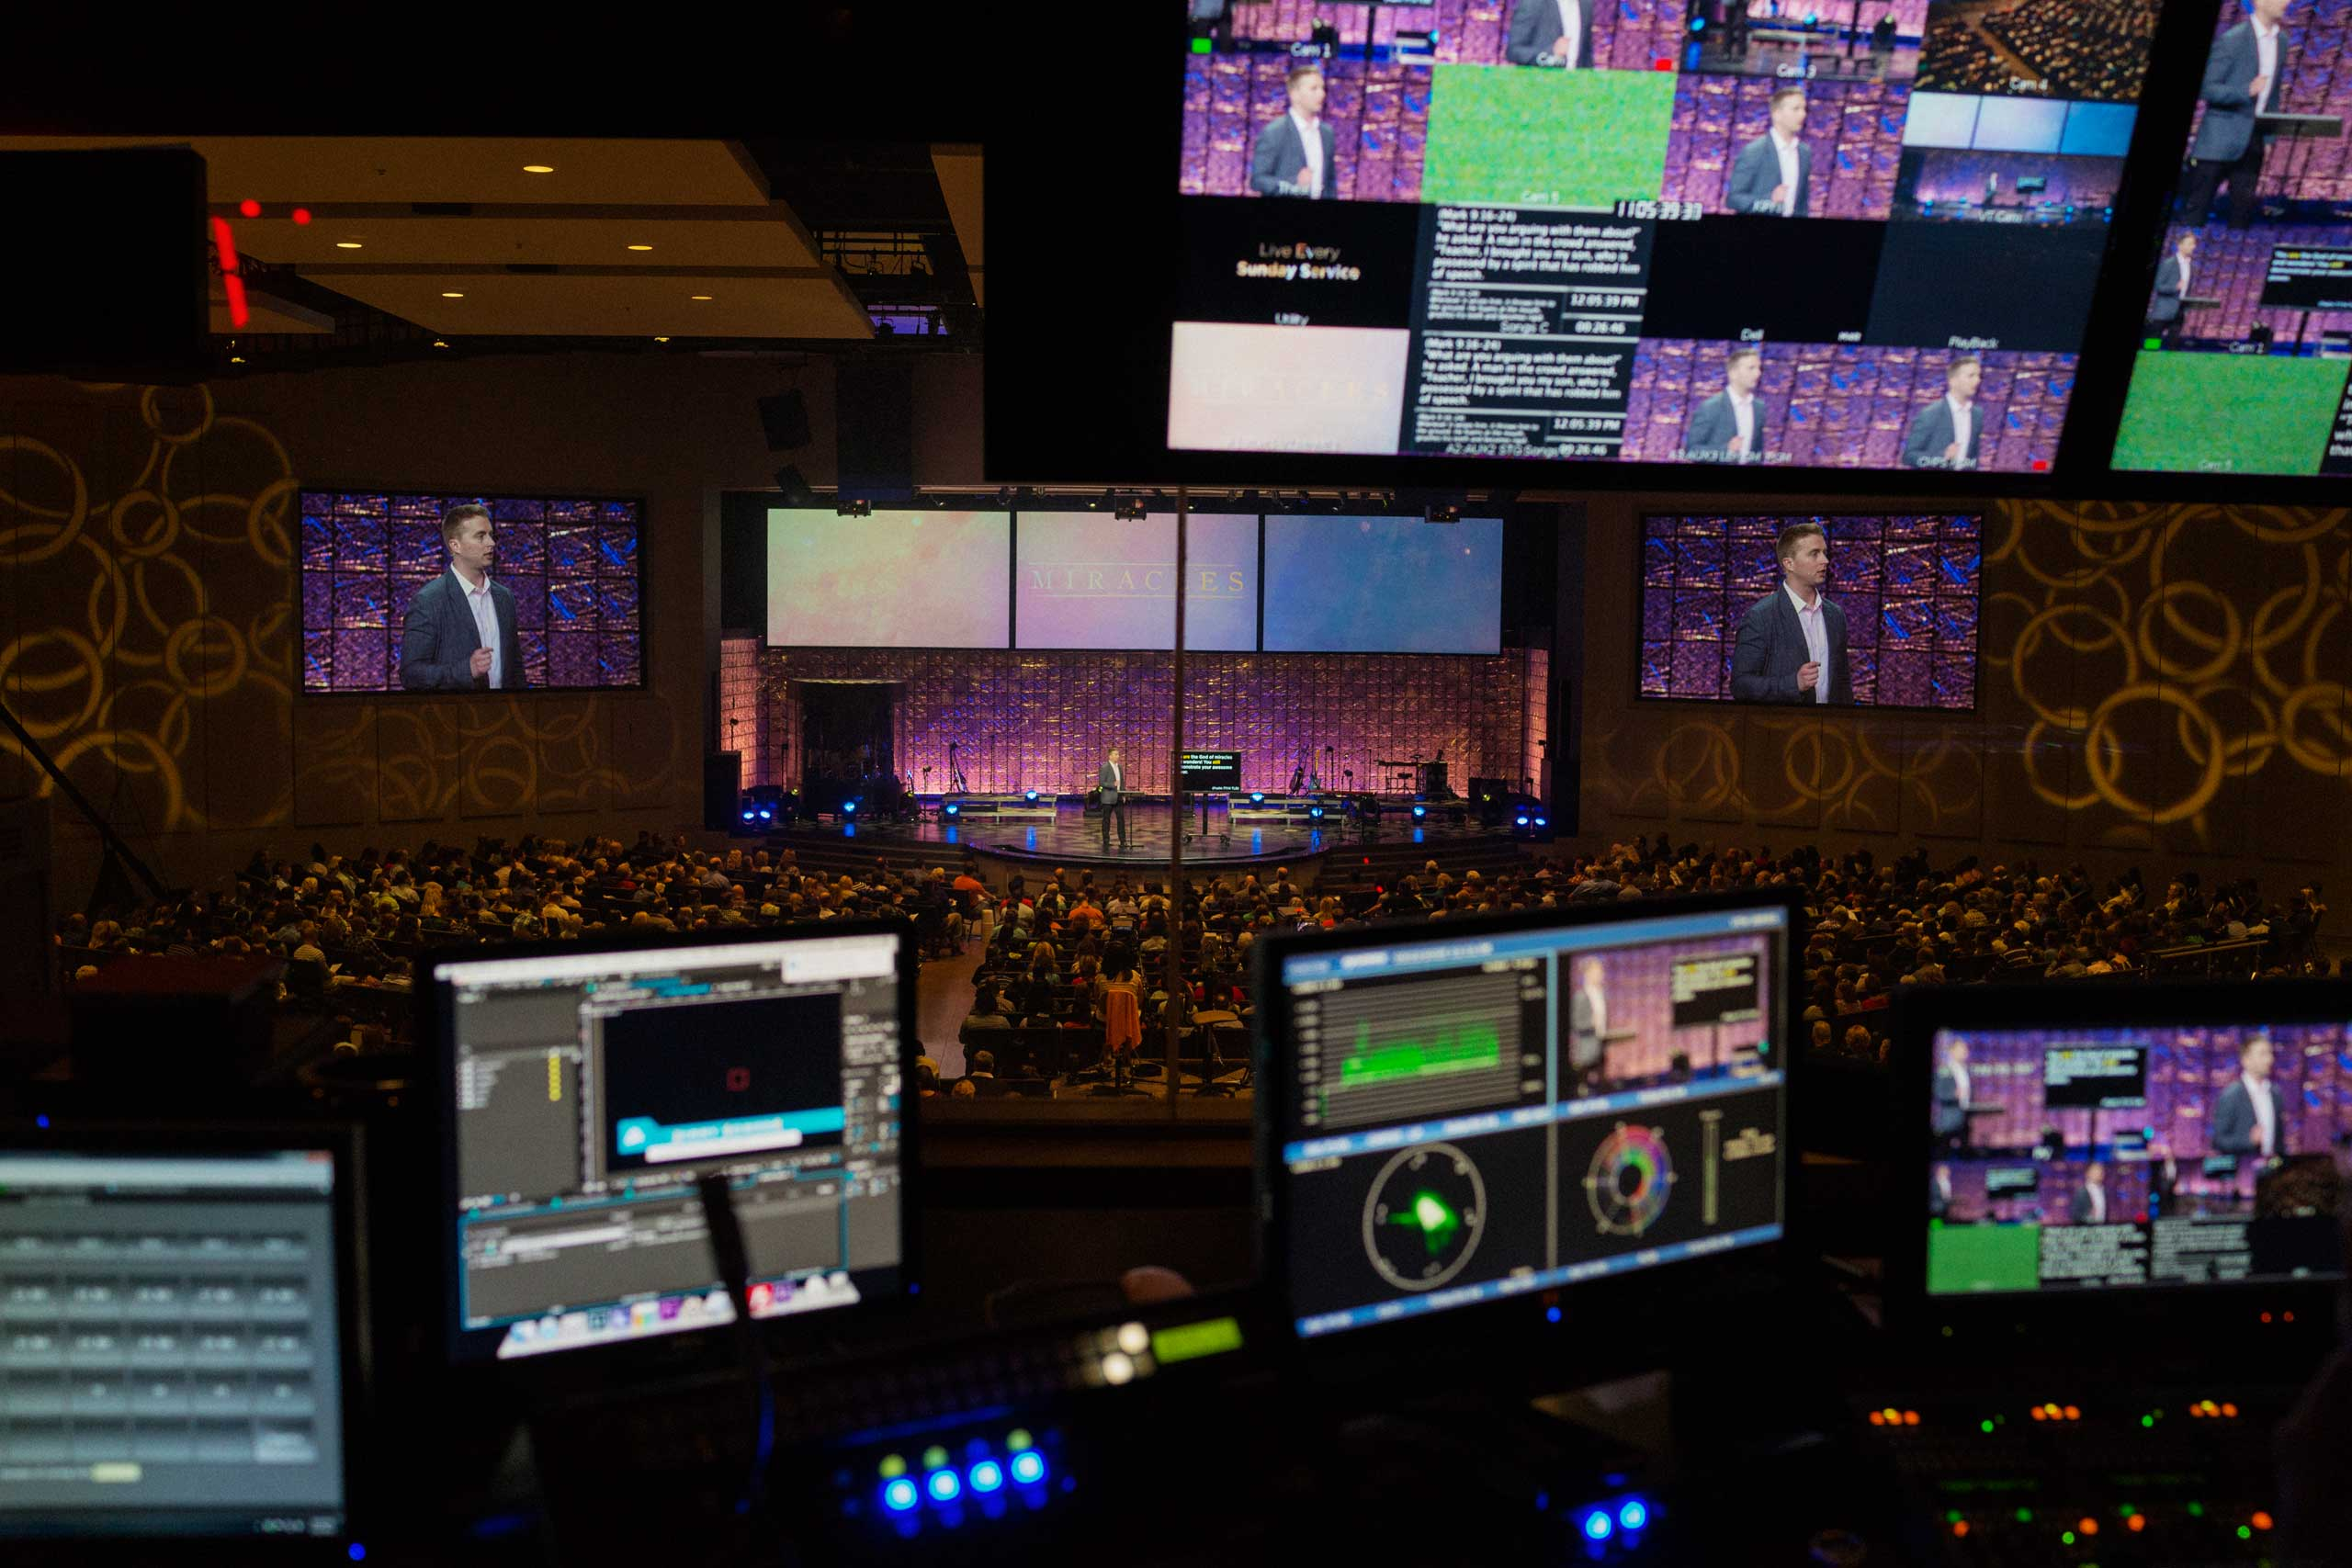 The view of services from the sound booth  at Church of the Highlands.